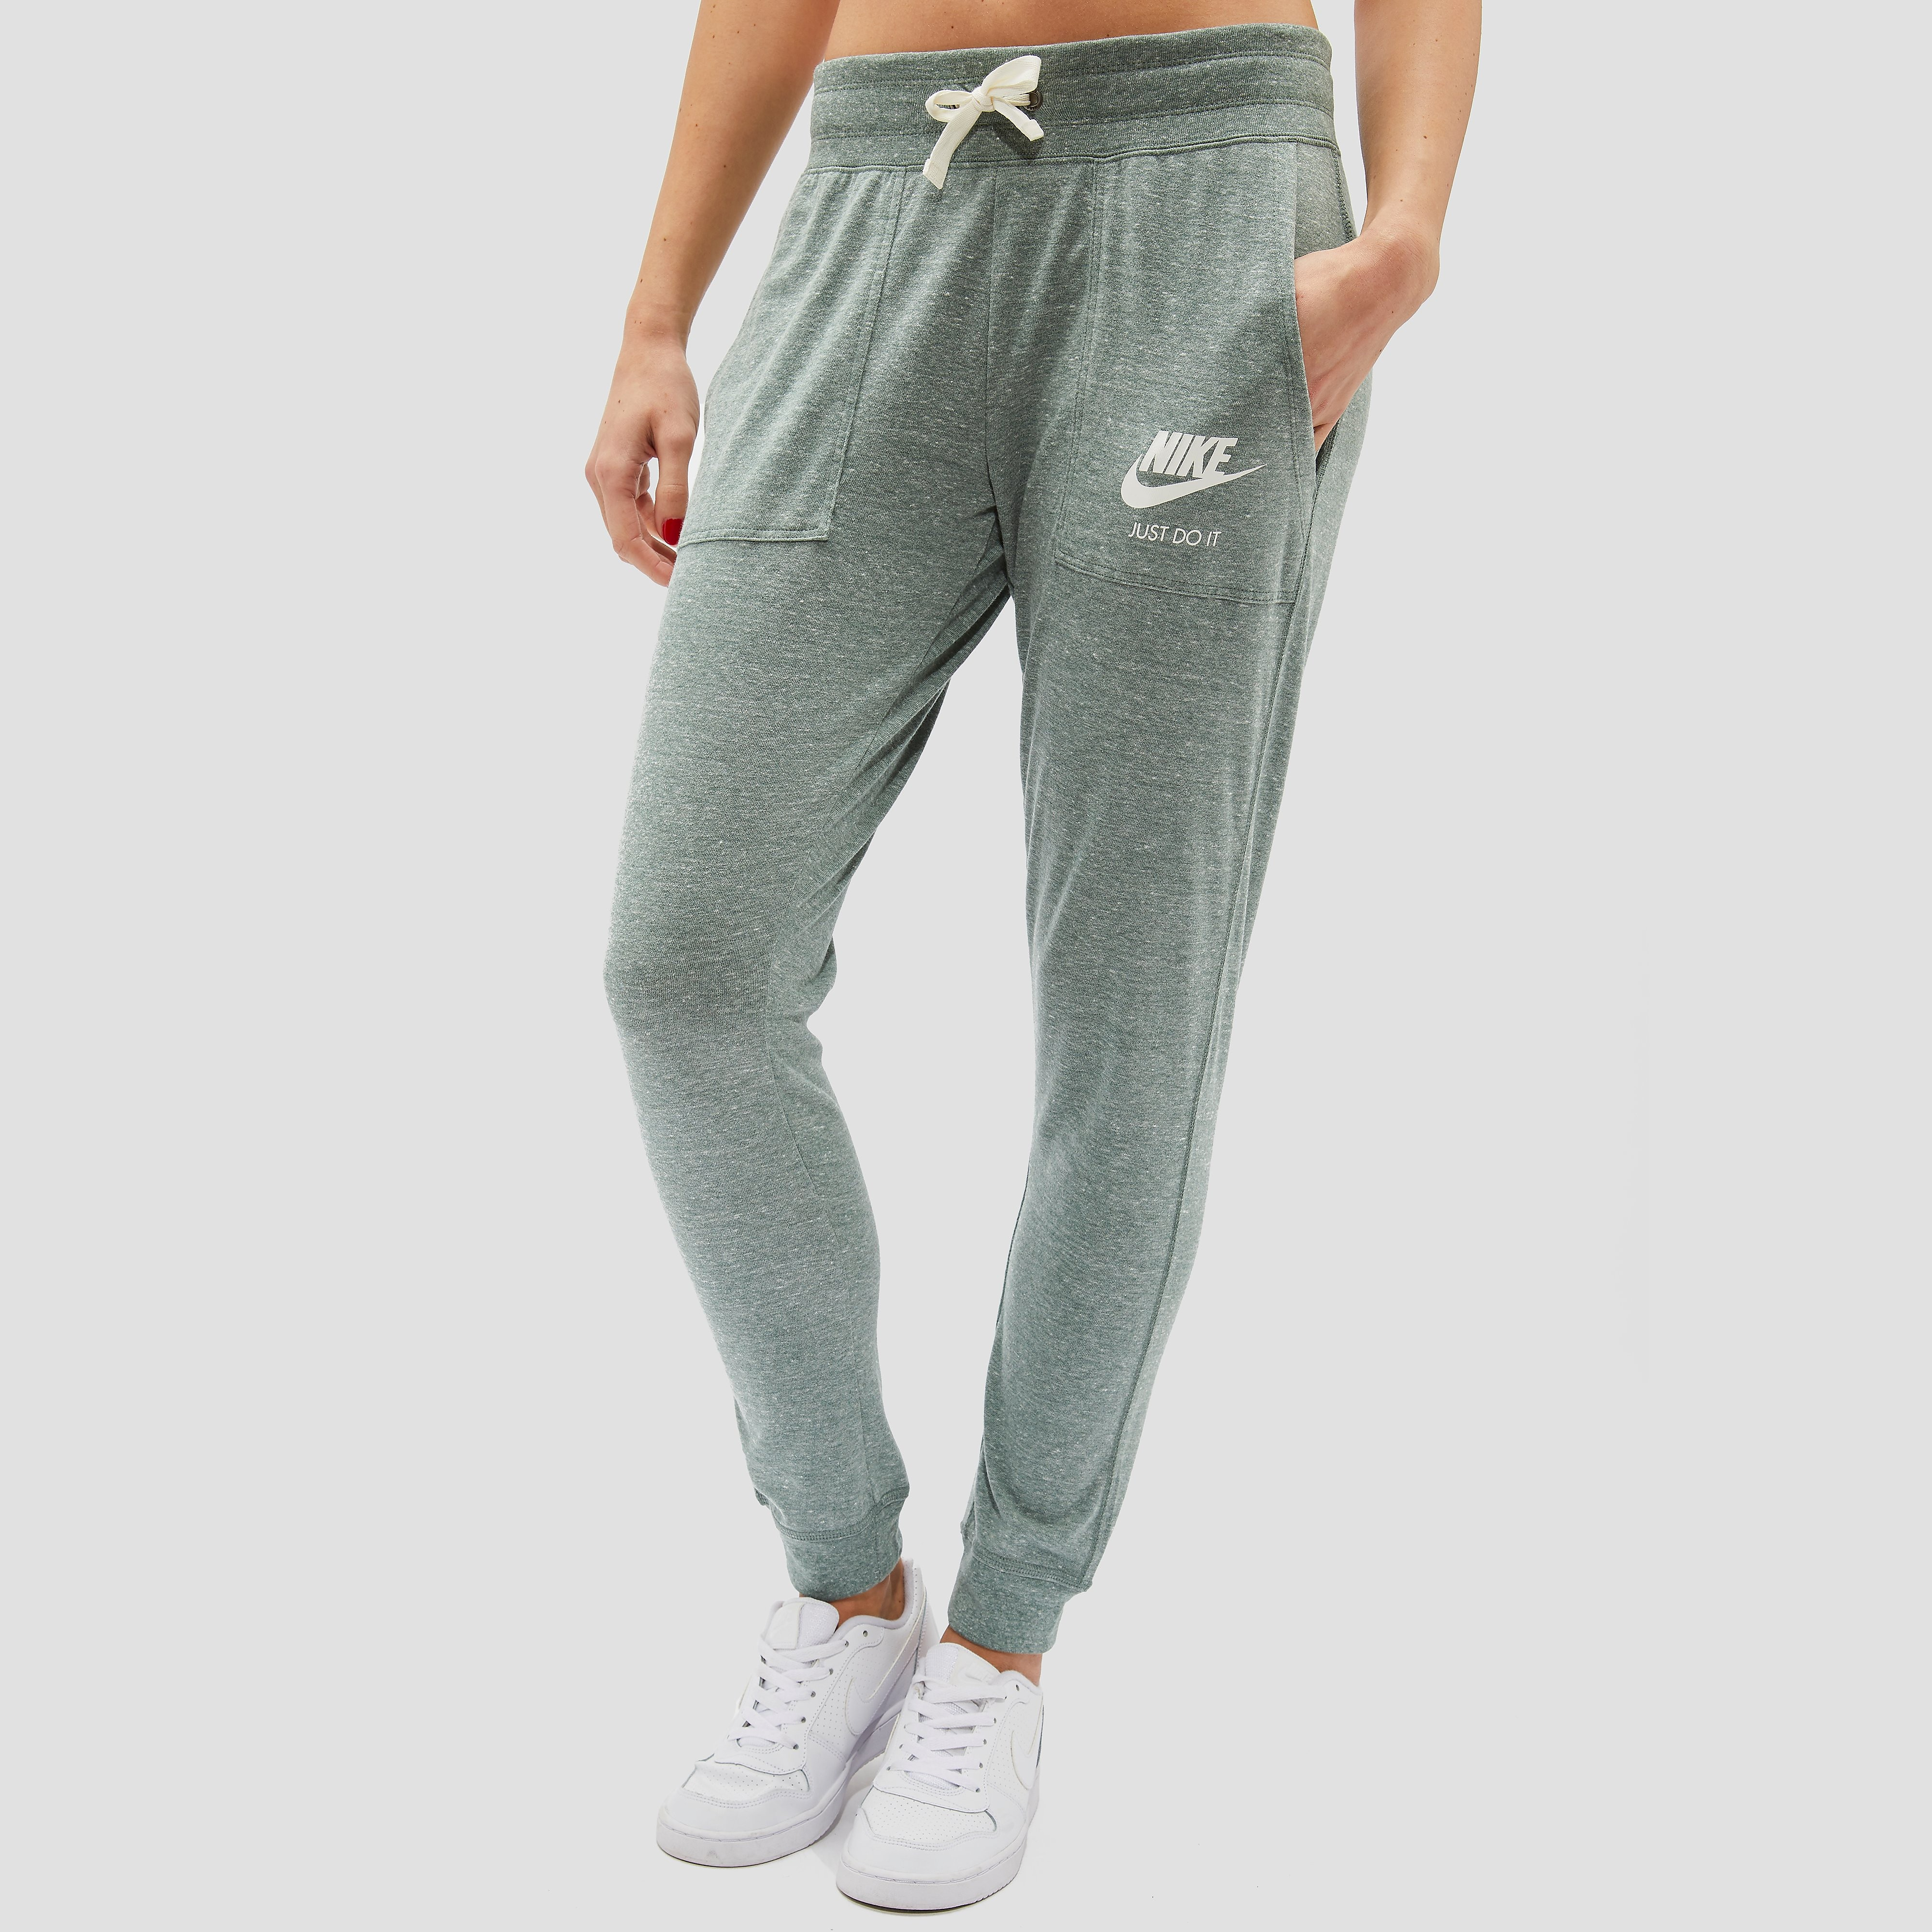 NIKE GYM VINTAGE JOGGINGBROEK GROEN DAMES